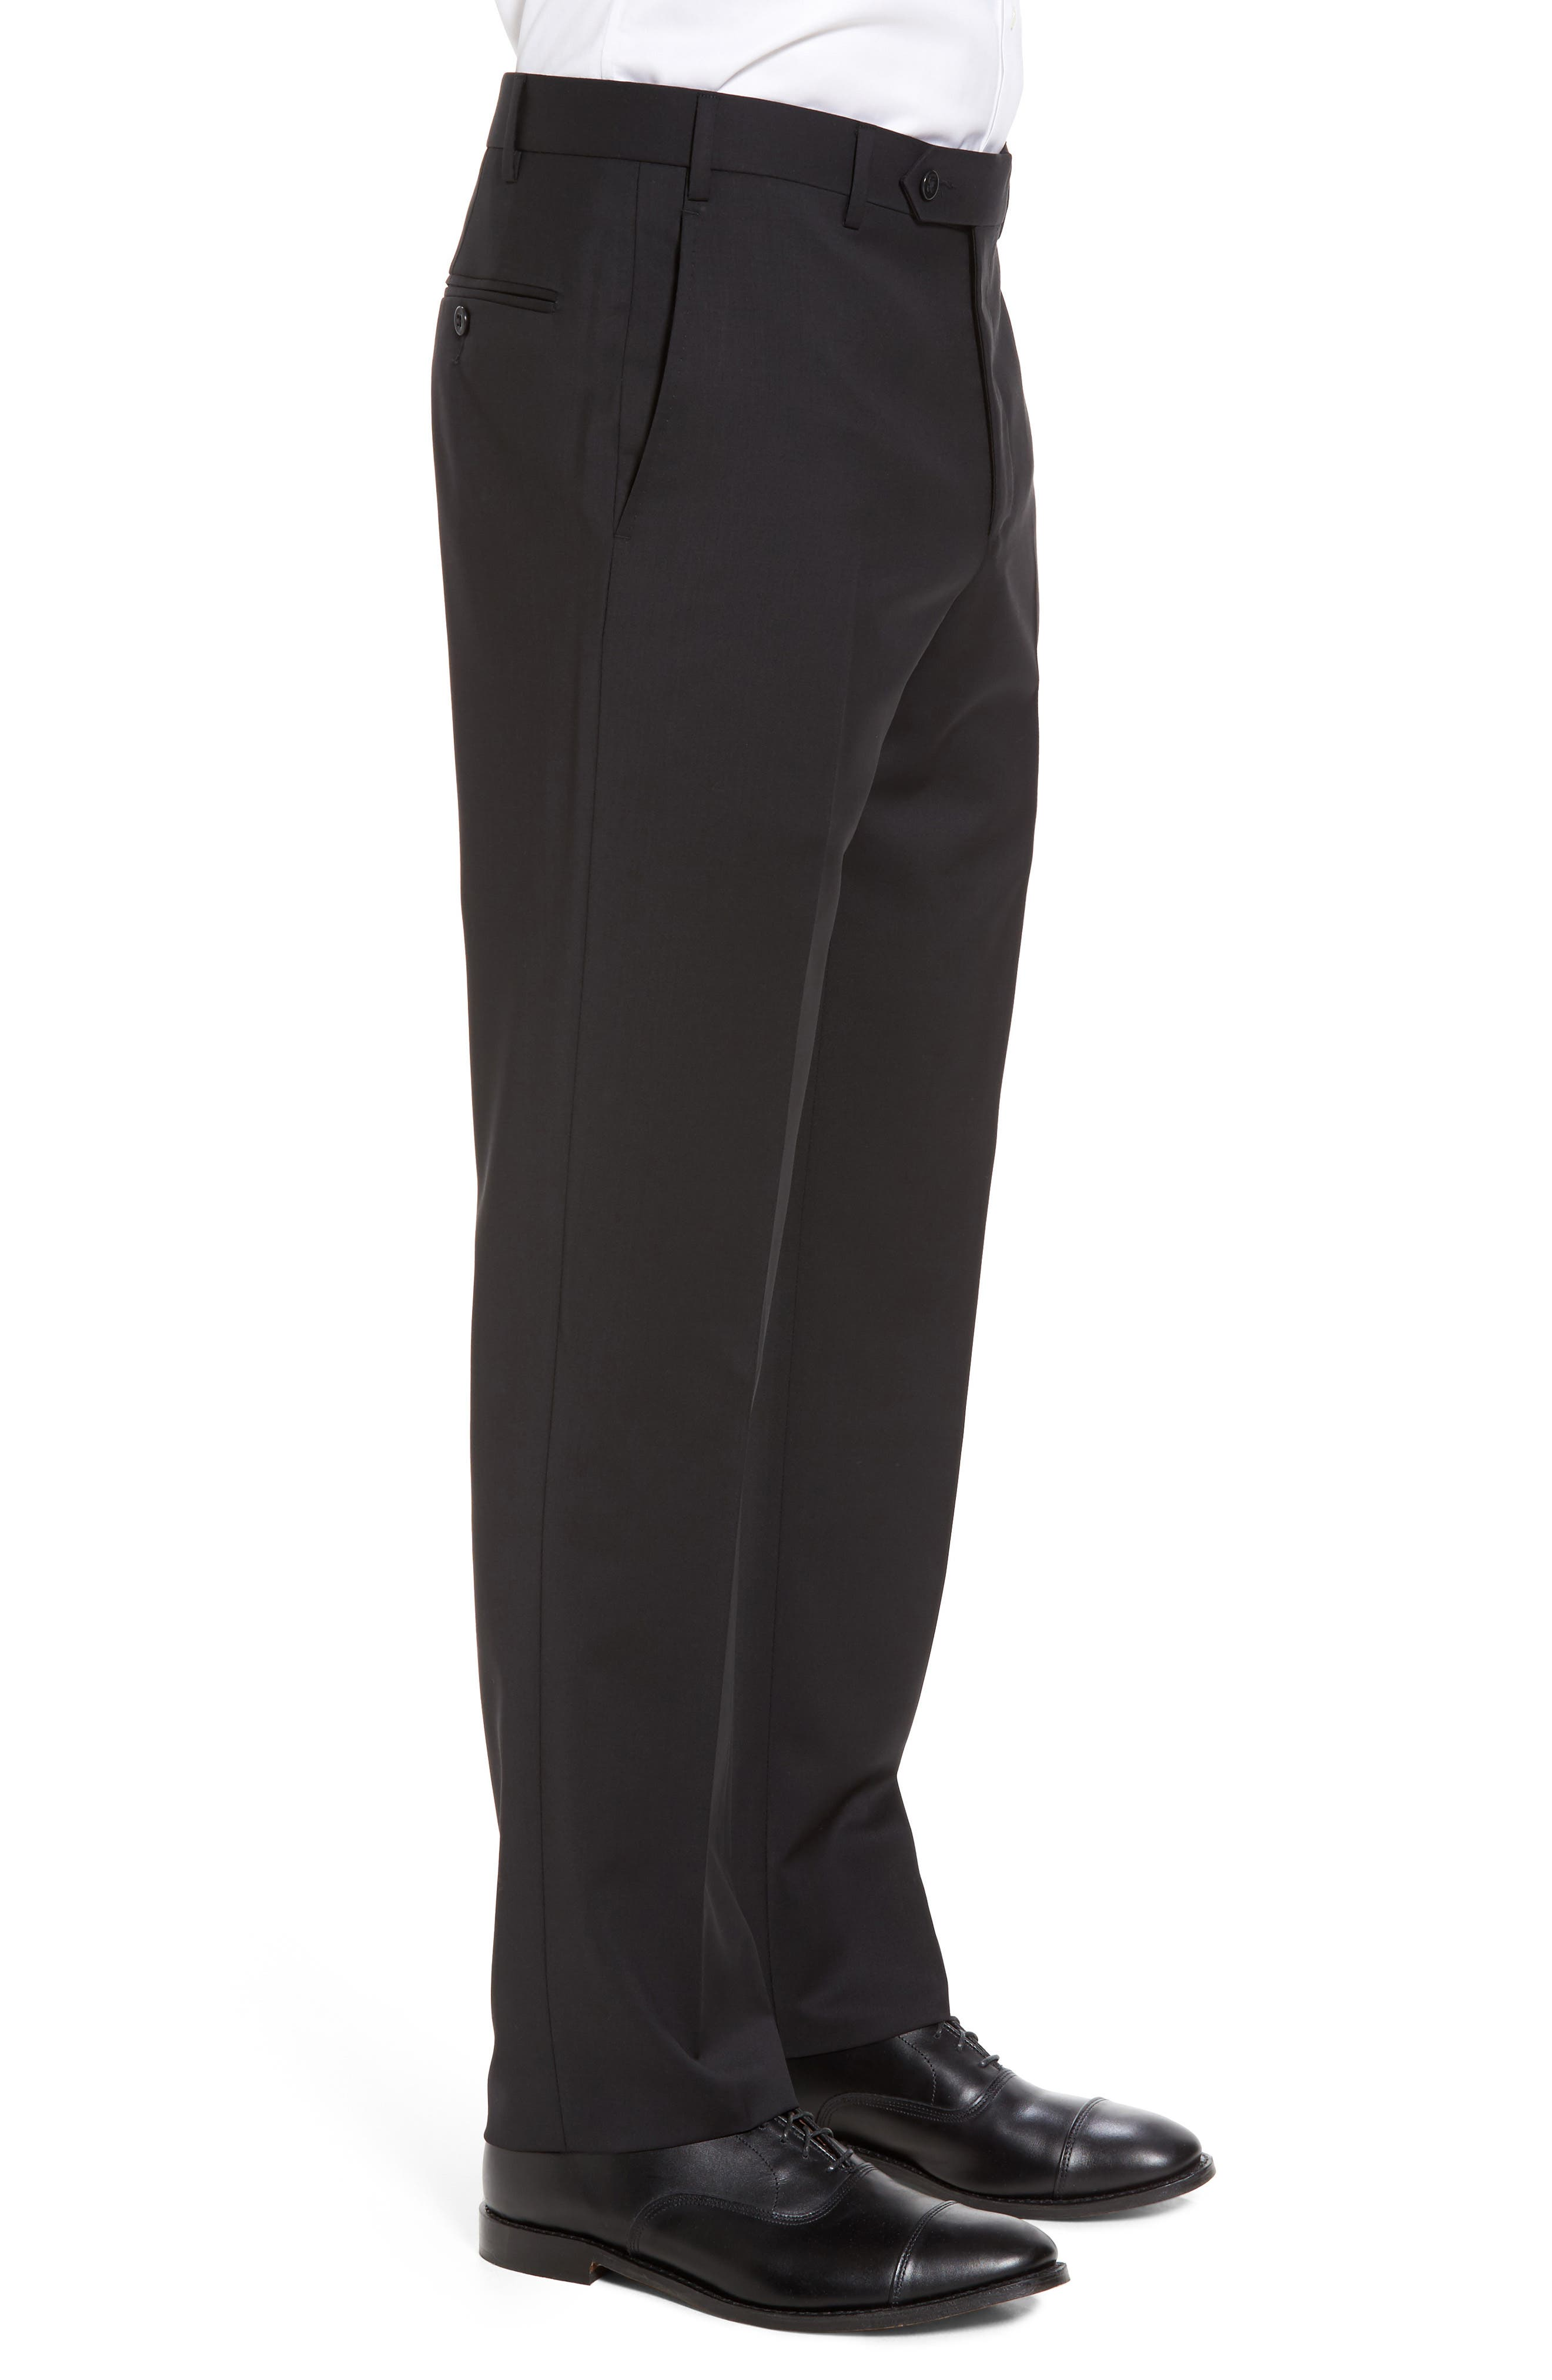 Devon Flat Front Solid Wool Serge Trousers,                             Alternate thumbnail 4, color,                             BLACK